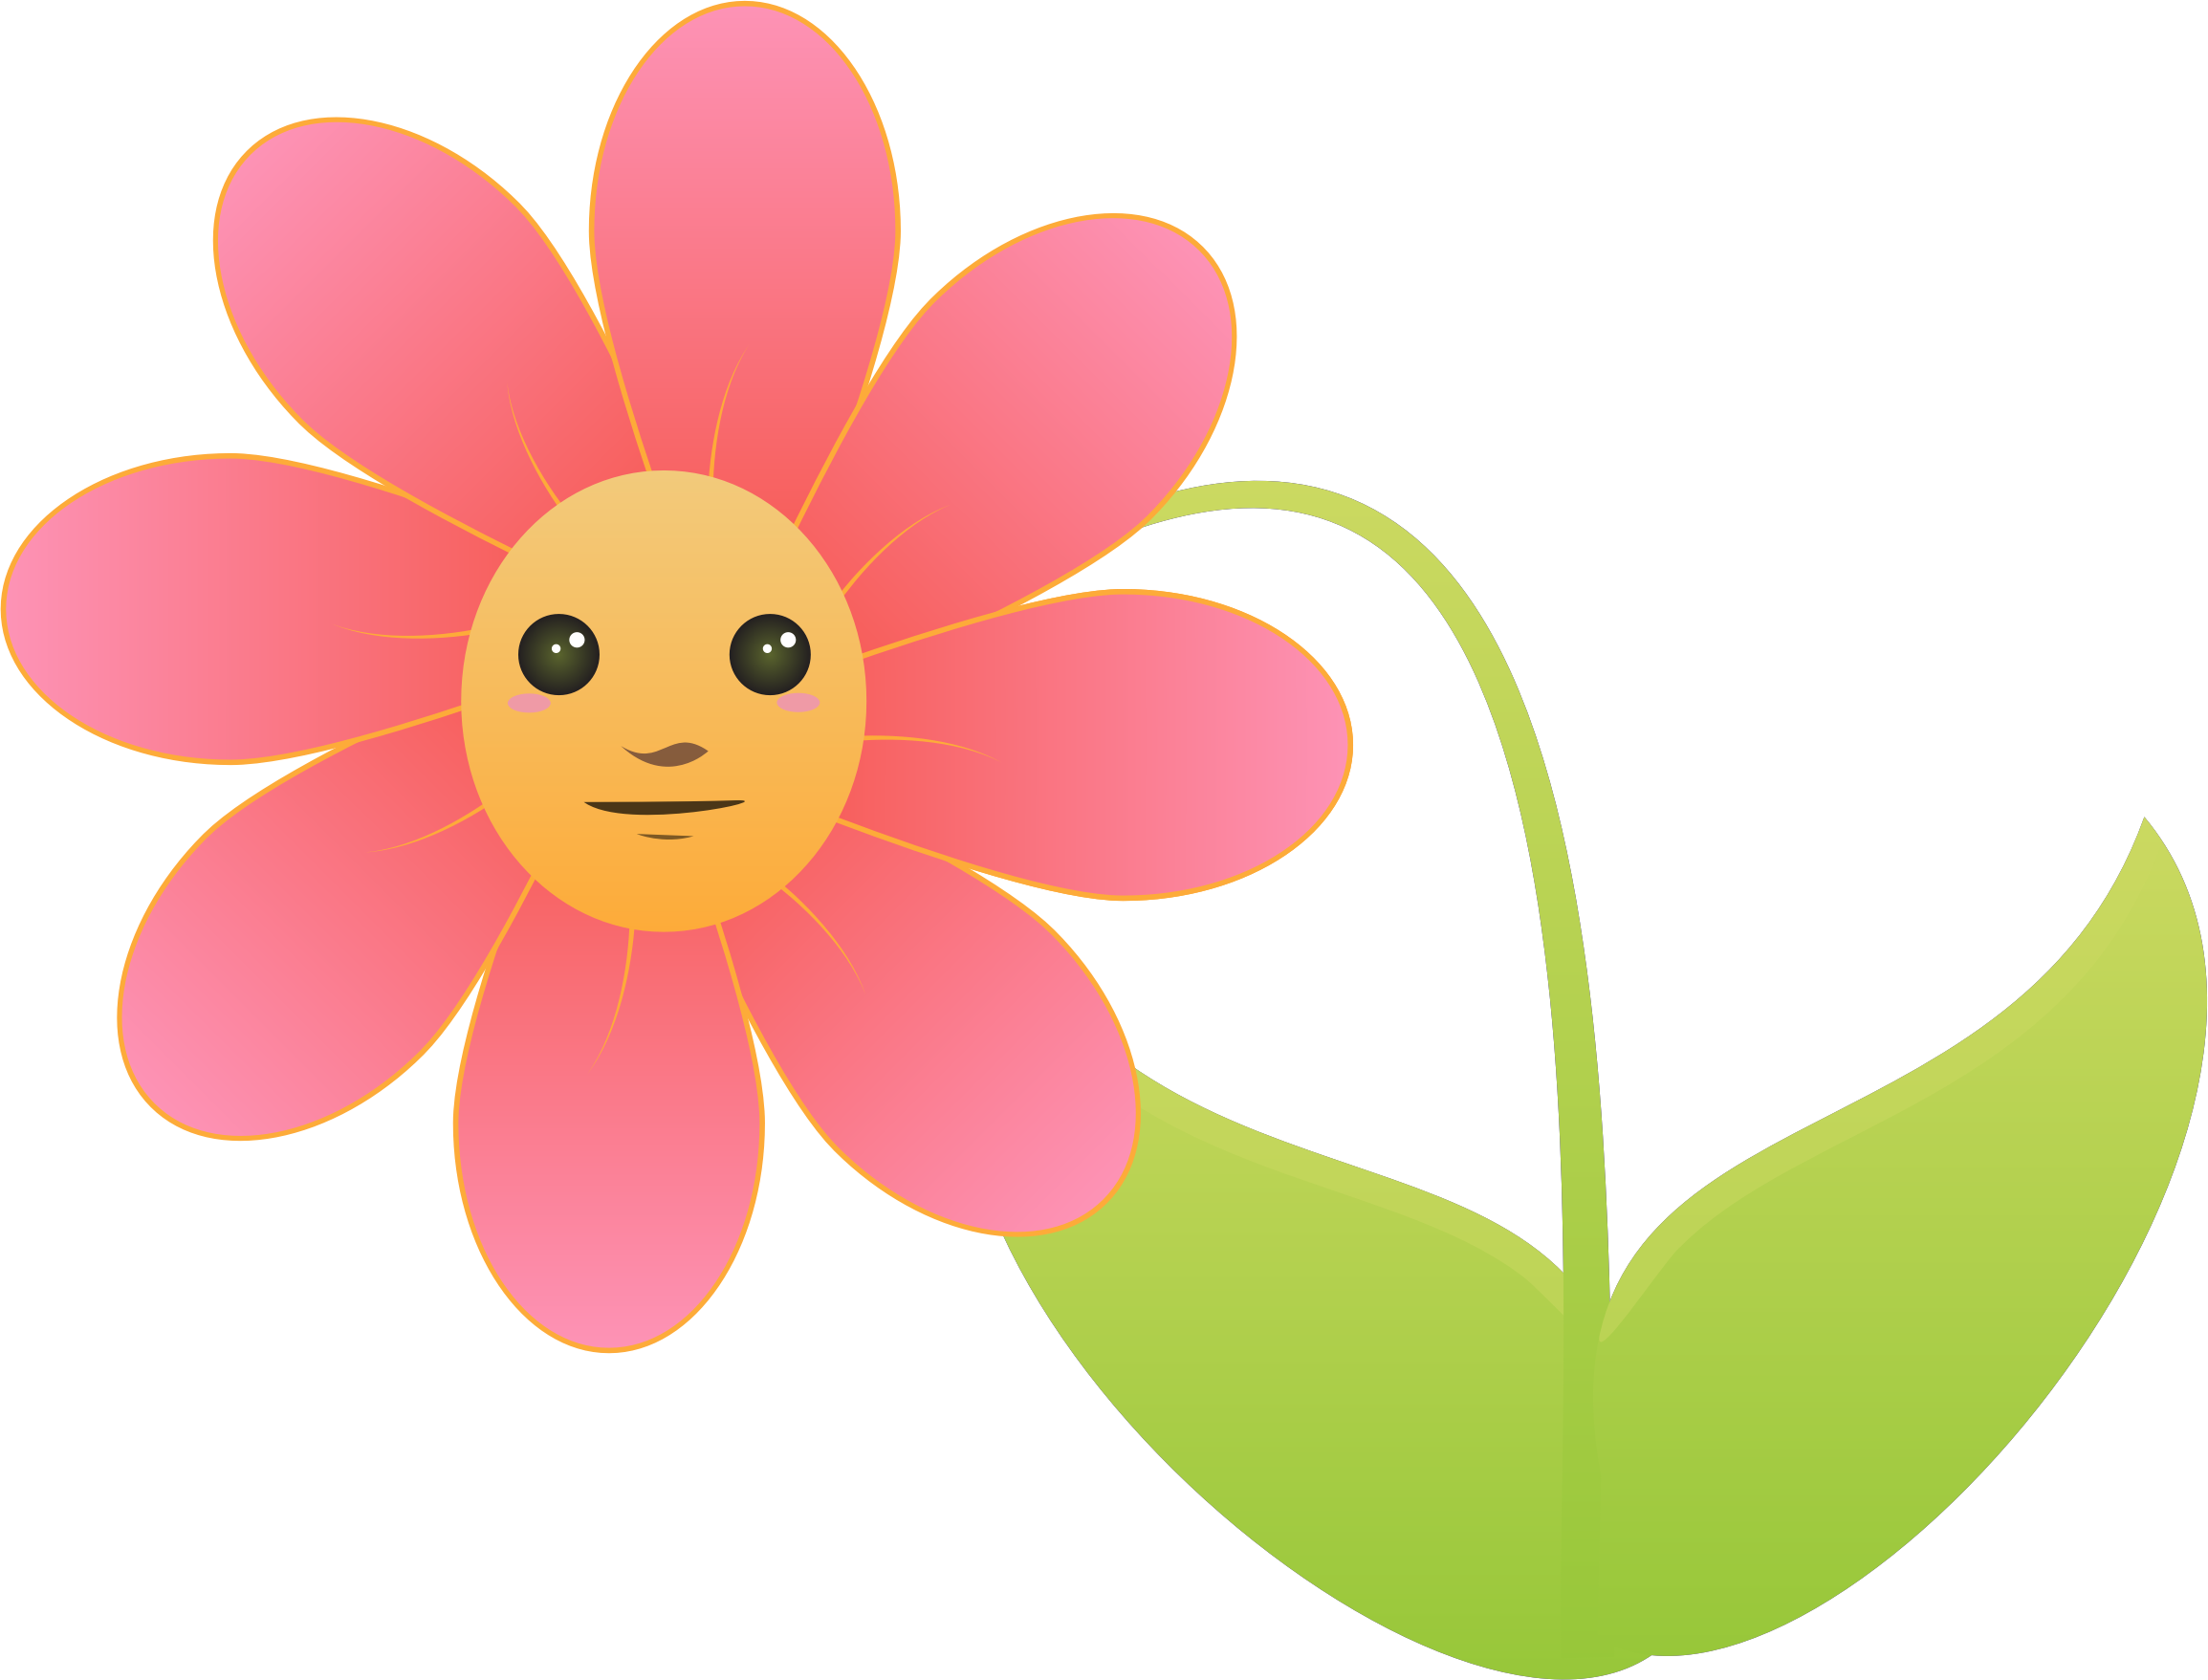 Flower with face by intergrapher